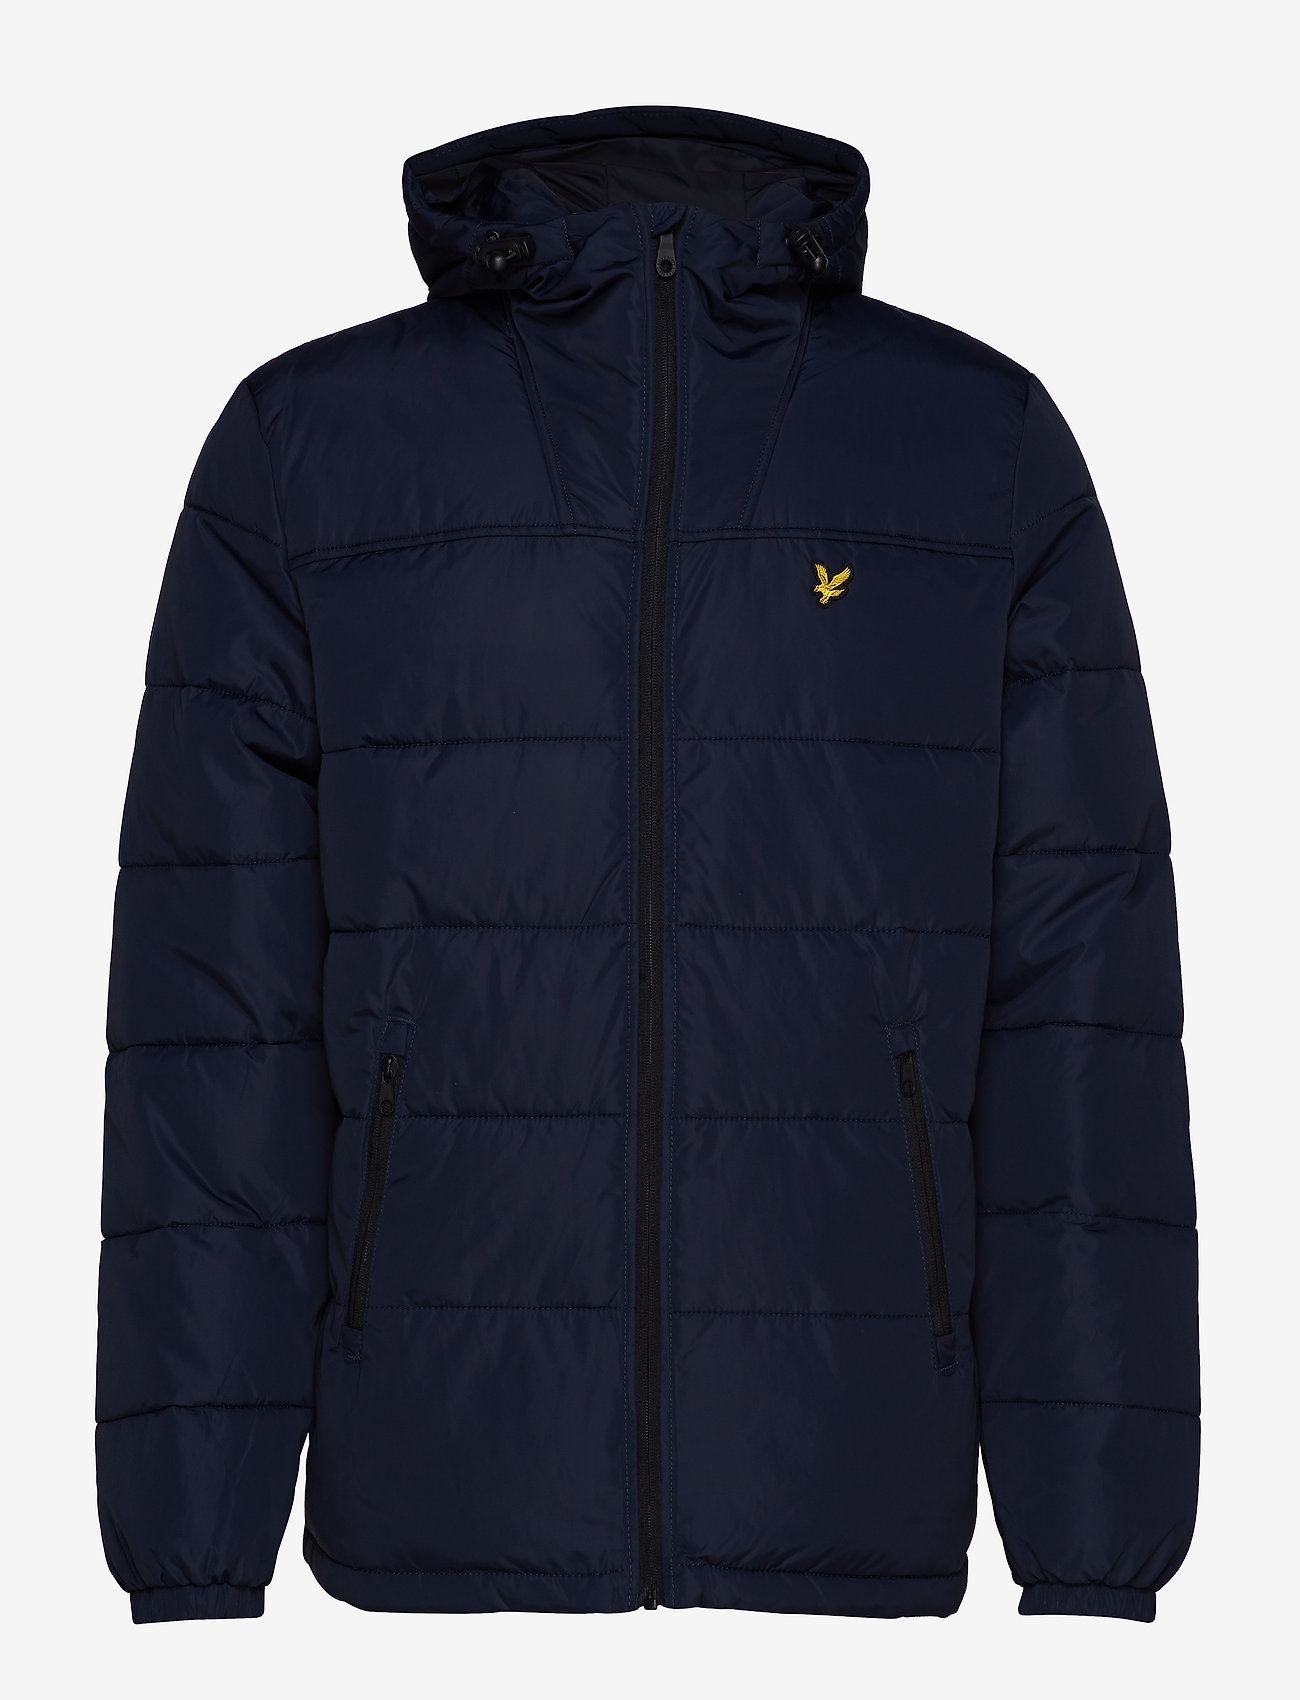 Lyle & Scott Wadded Jacket - Jackets & Coats